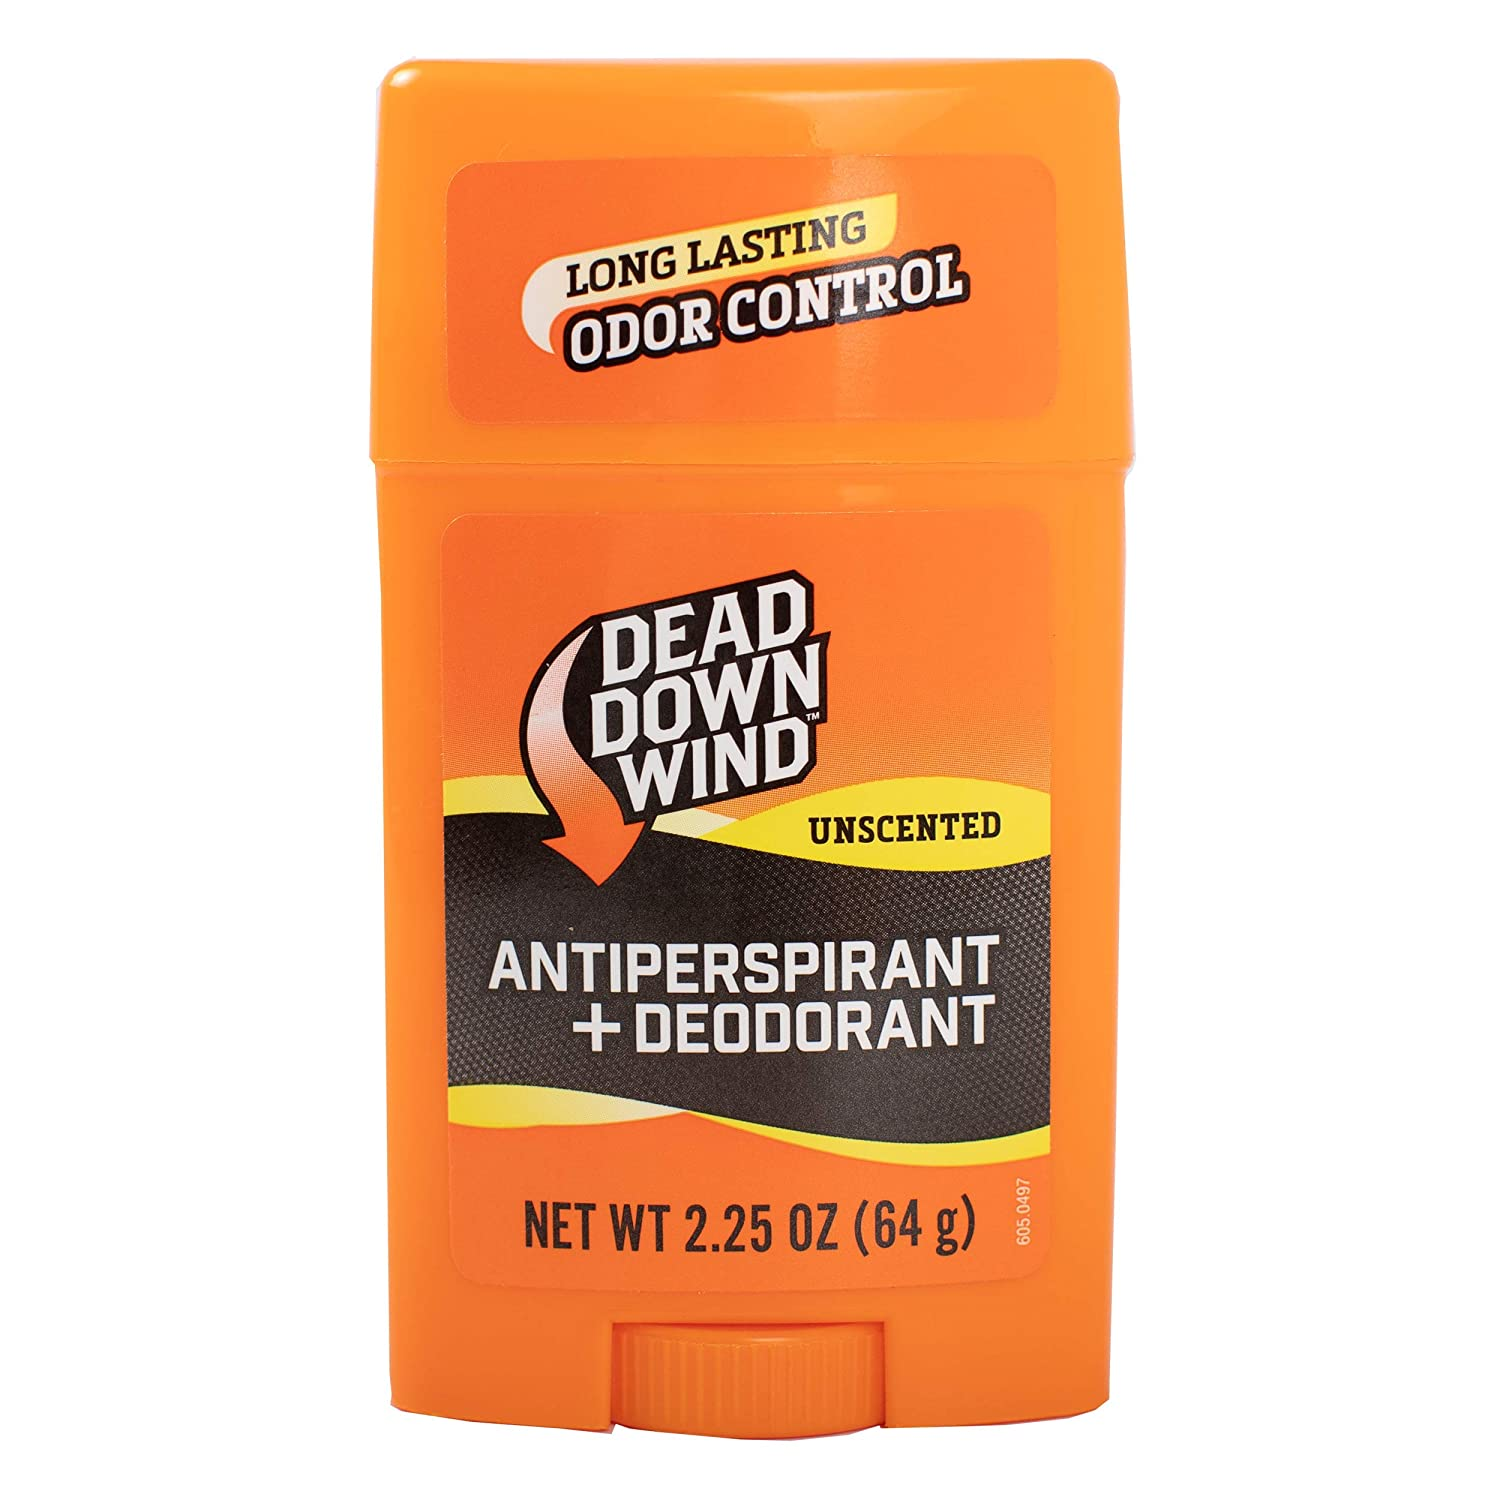 Dead Down Wind Men's Antiperspirant Deodorant Stick | 2.25 Ounce | Unscented, Long Lasting, Chemical & Organic Odor Eliminator, Safe for Sensitive Skin | Hunting Accessories